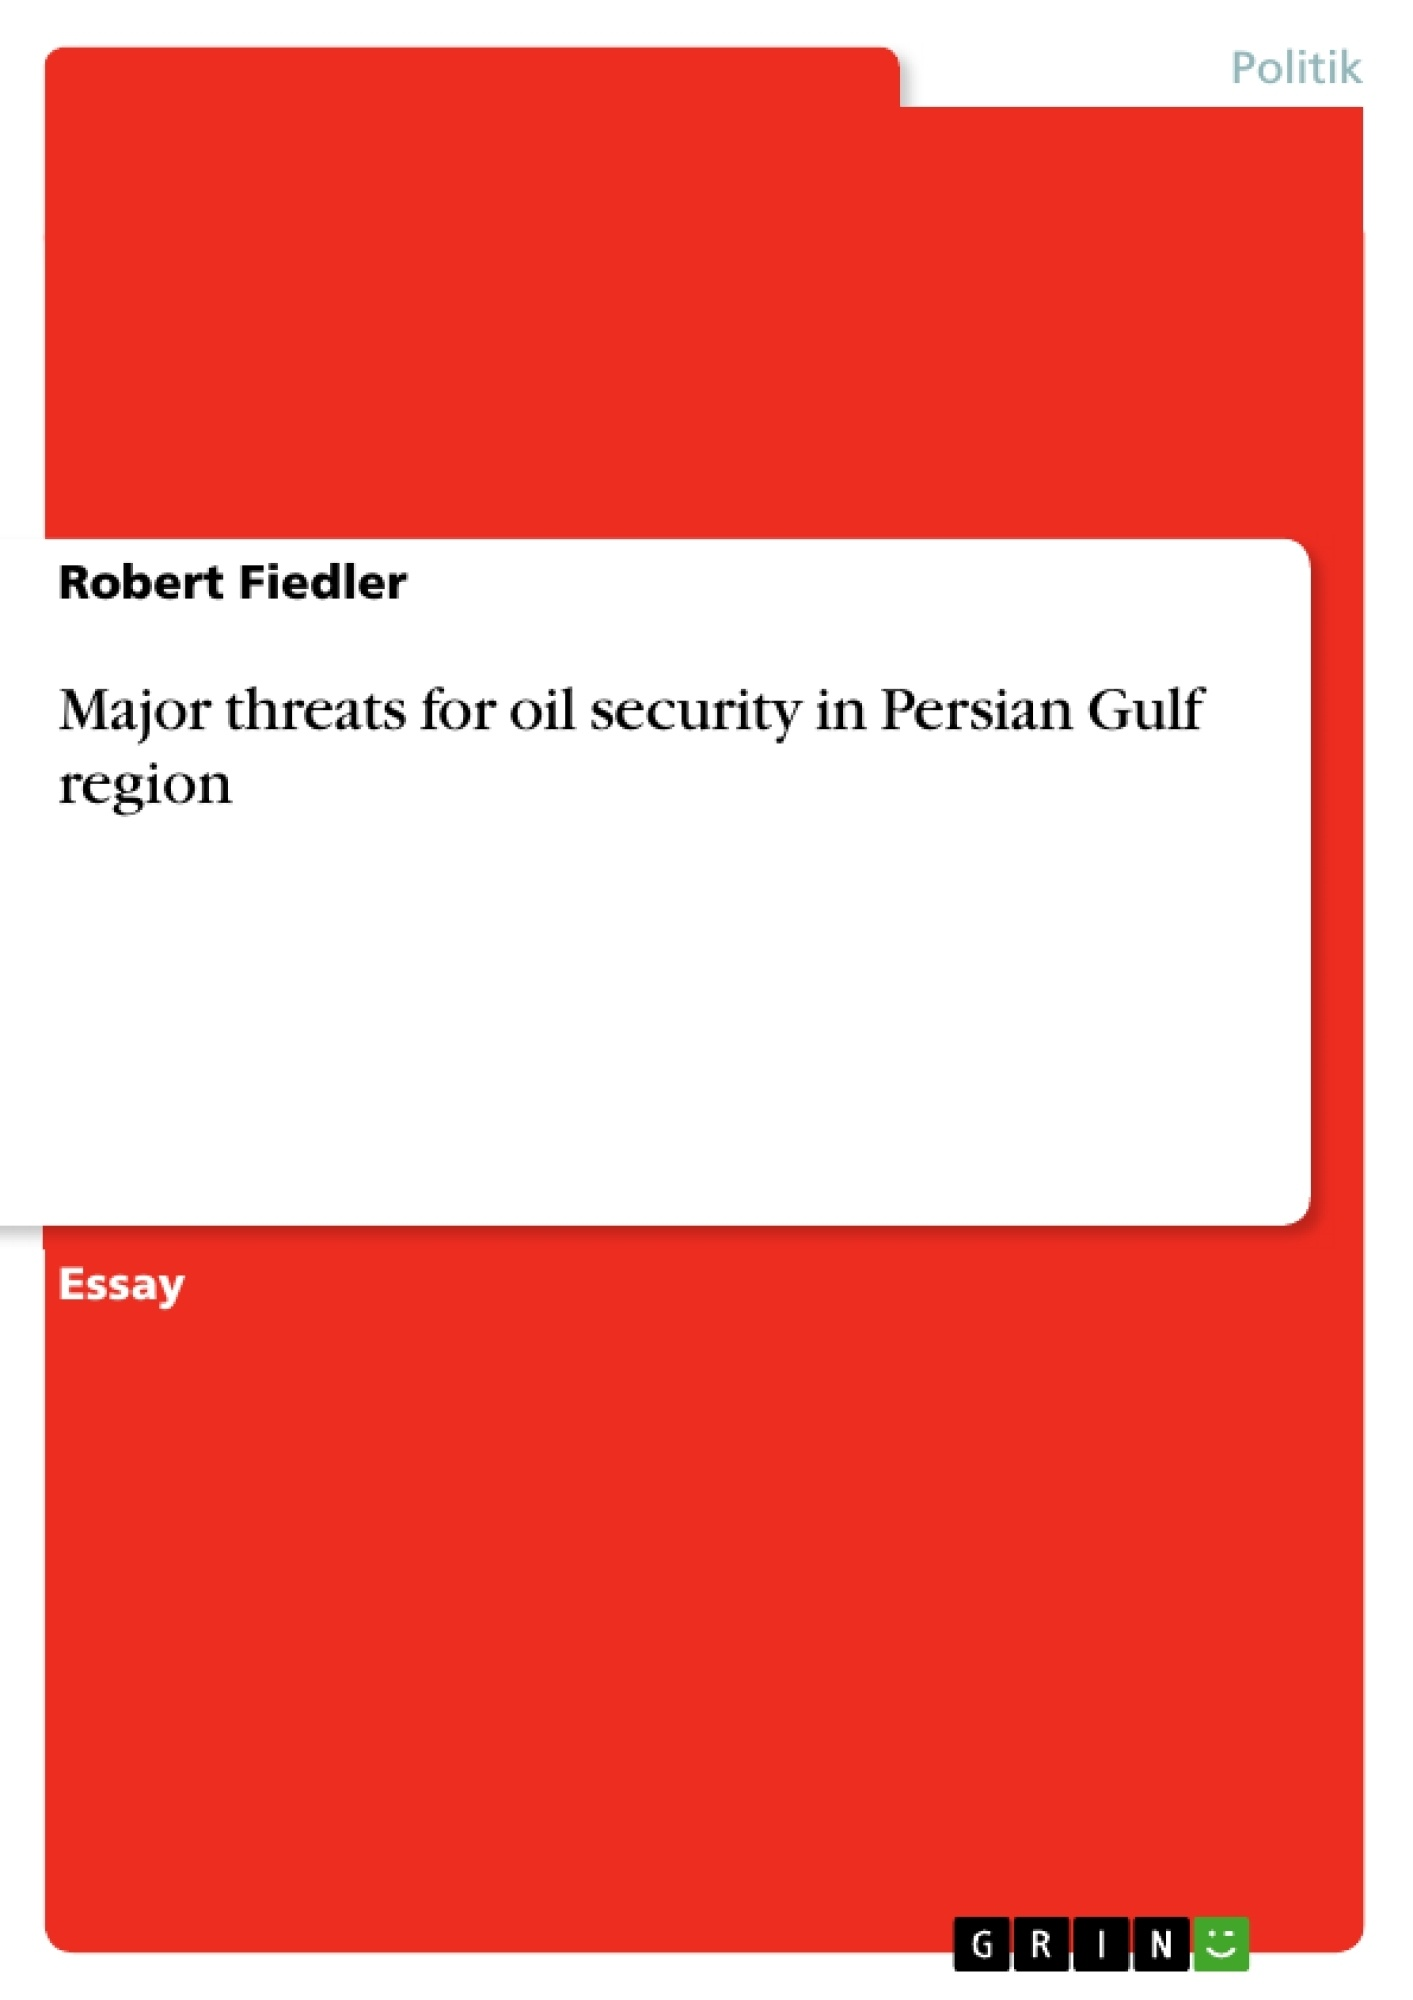 Titel: Major threats for oil security in Persian Gulf region